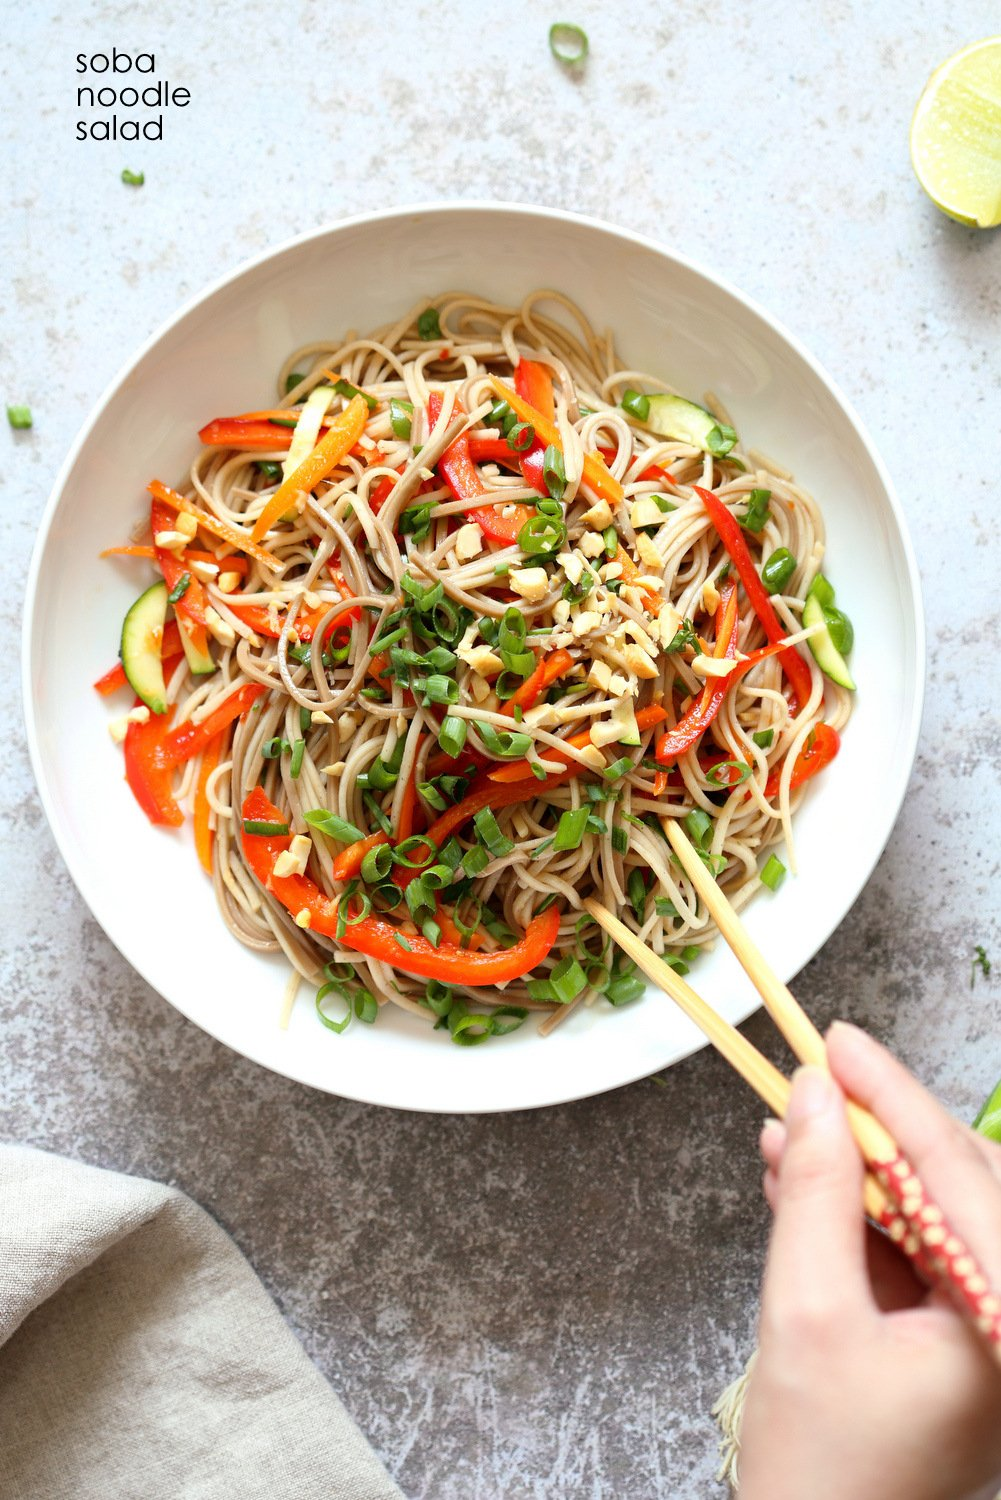 Cold Soba Noodle Salad Recipe. Noodle Salad Bowl with Peppers, Carrots, Zucchini, Green Onion and Sesame Lime Ginger Dressing. Refreshing Summer Salad. #Vegan #Nutfree. #Glutenfree Option, #SoyfreeOption #veganricha #recipe